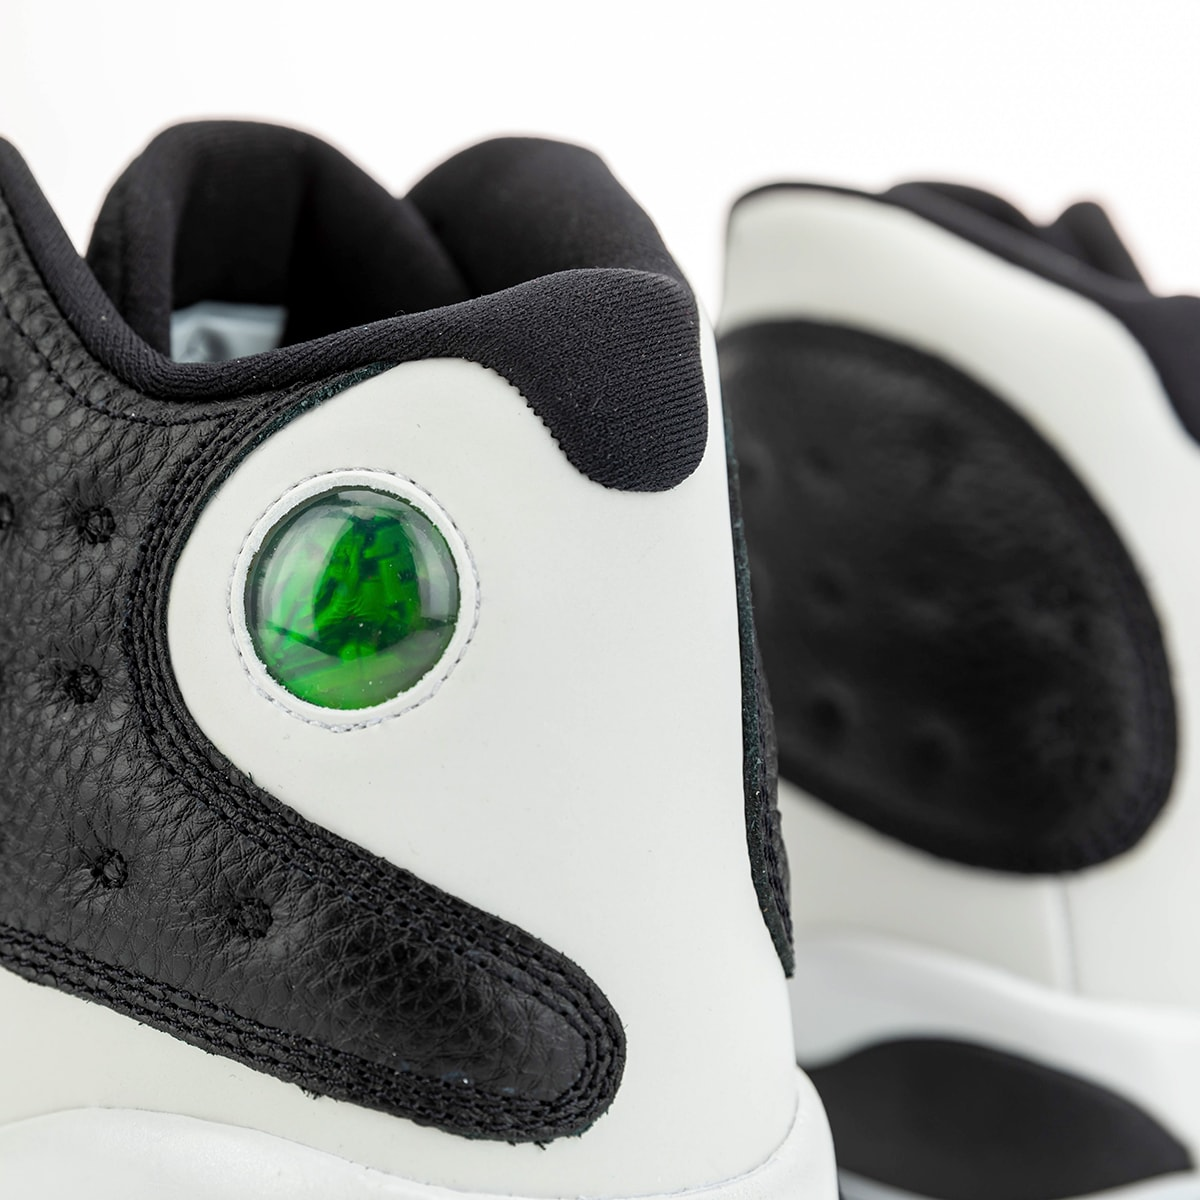 Detailed Looks At The Reverse He Got Game Jordan 13 House Of